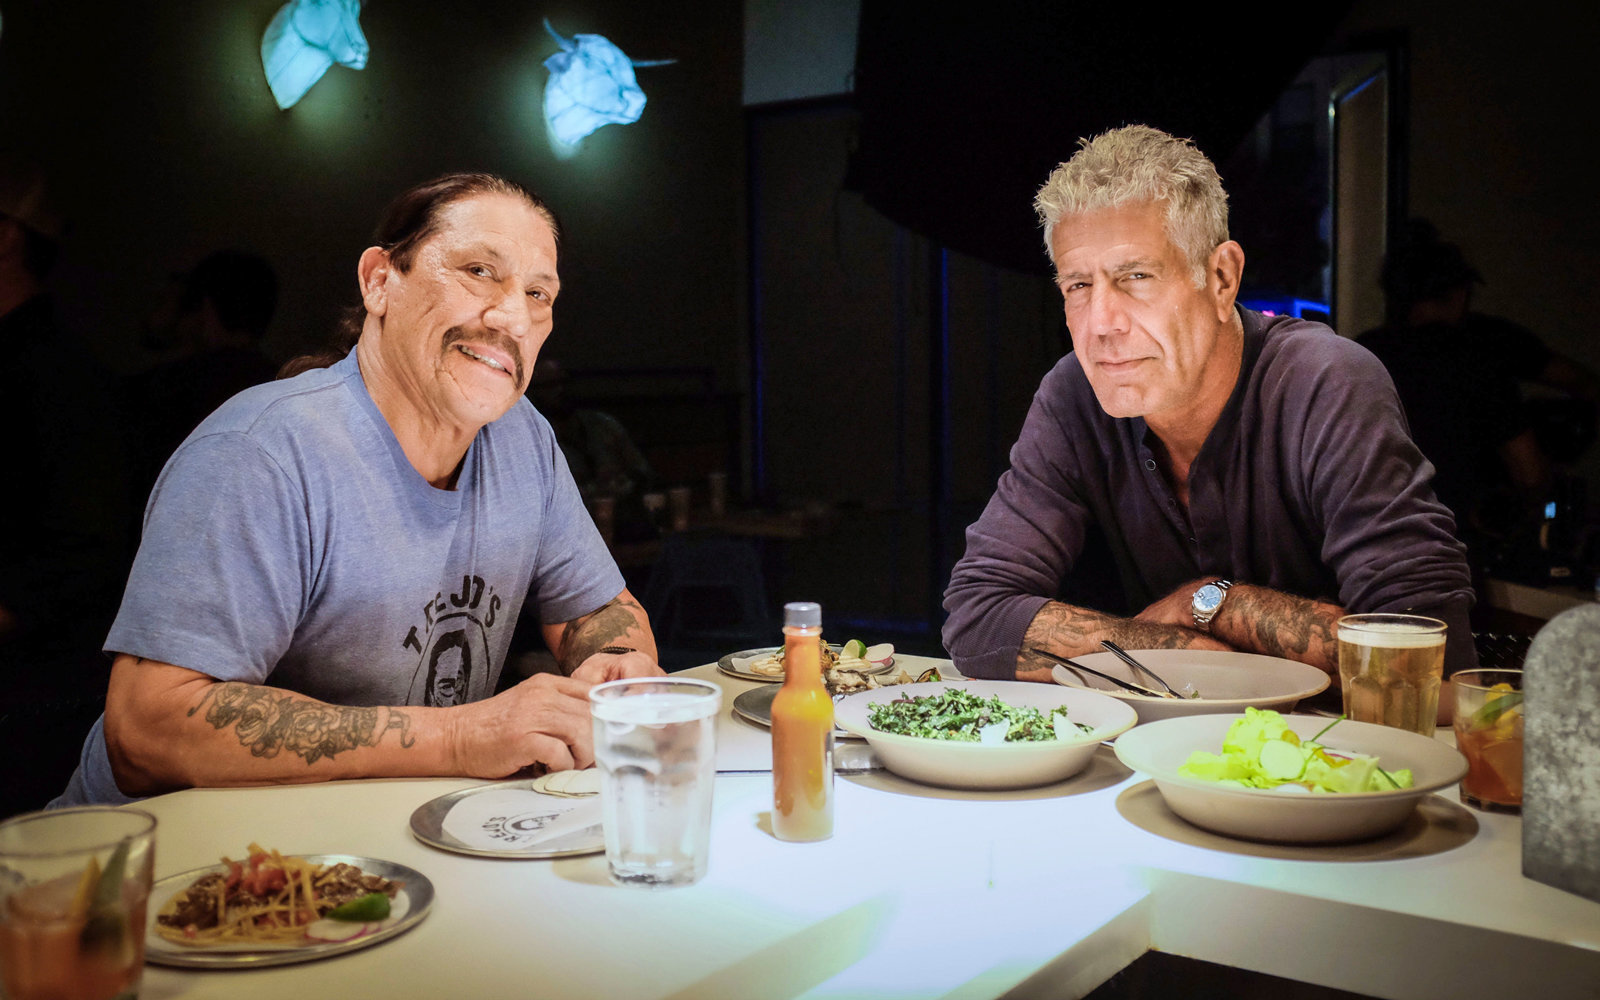 Anthony Bourdain returns on Parts Unknown on Sunday, April 30.